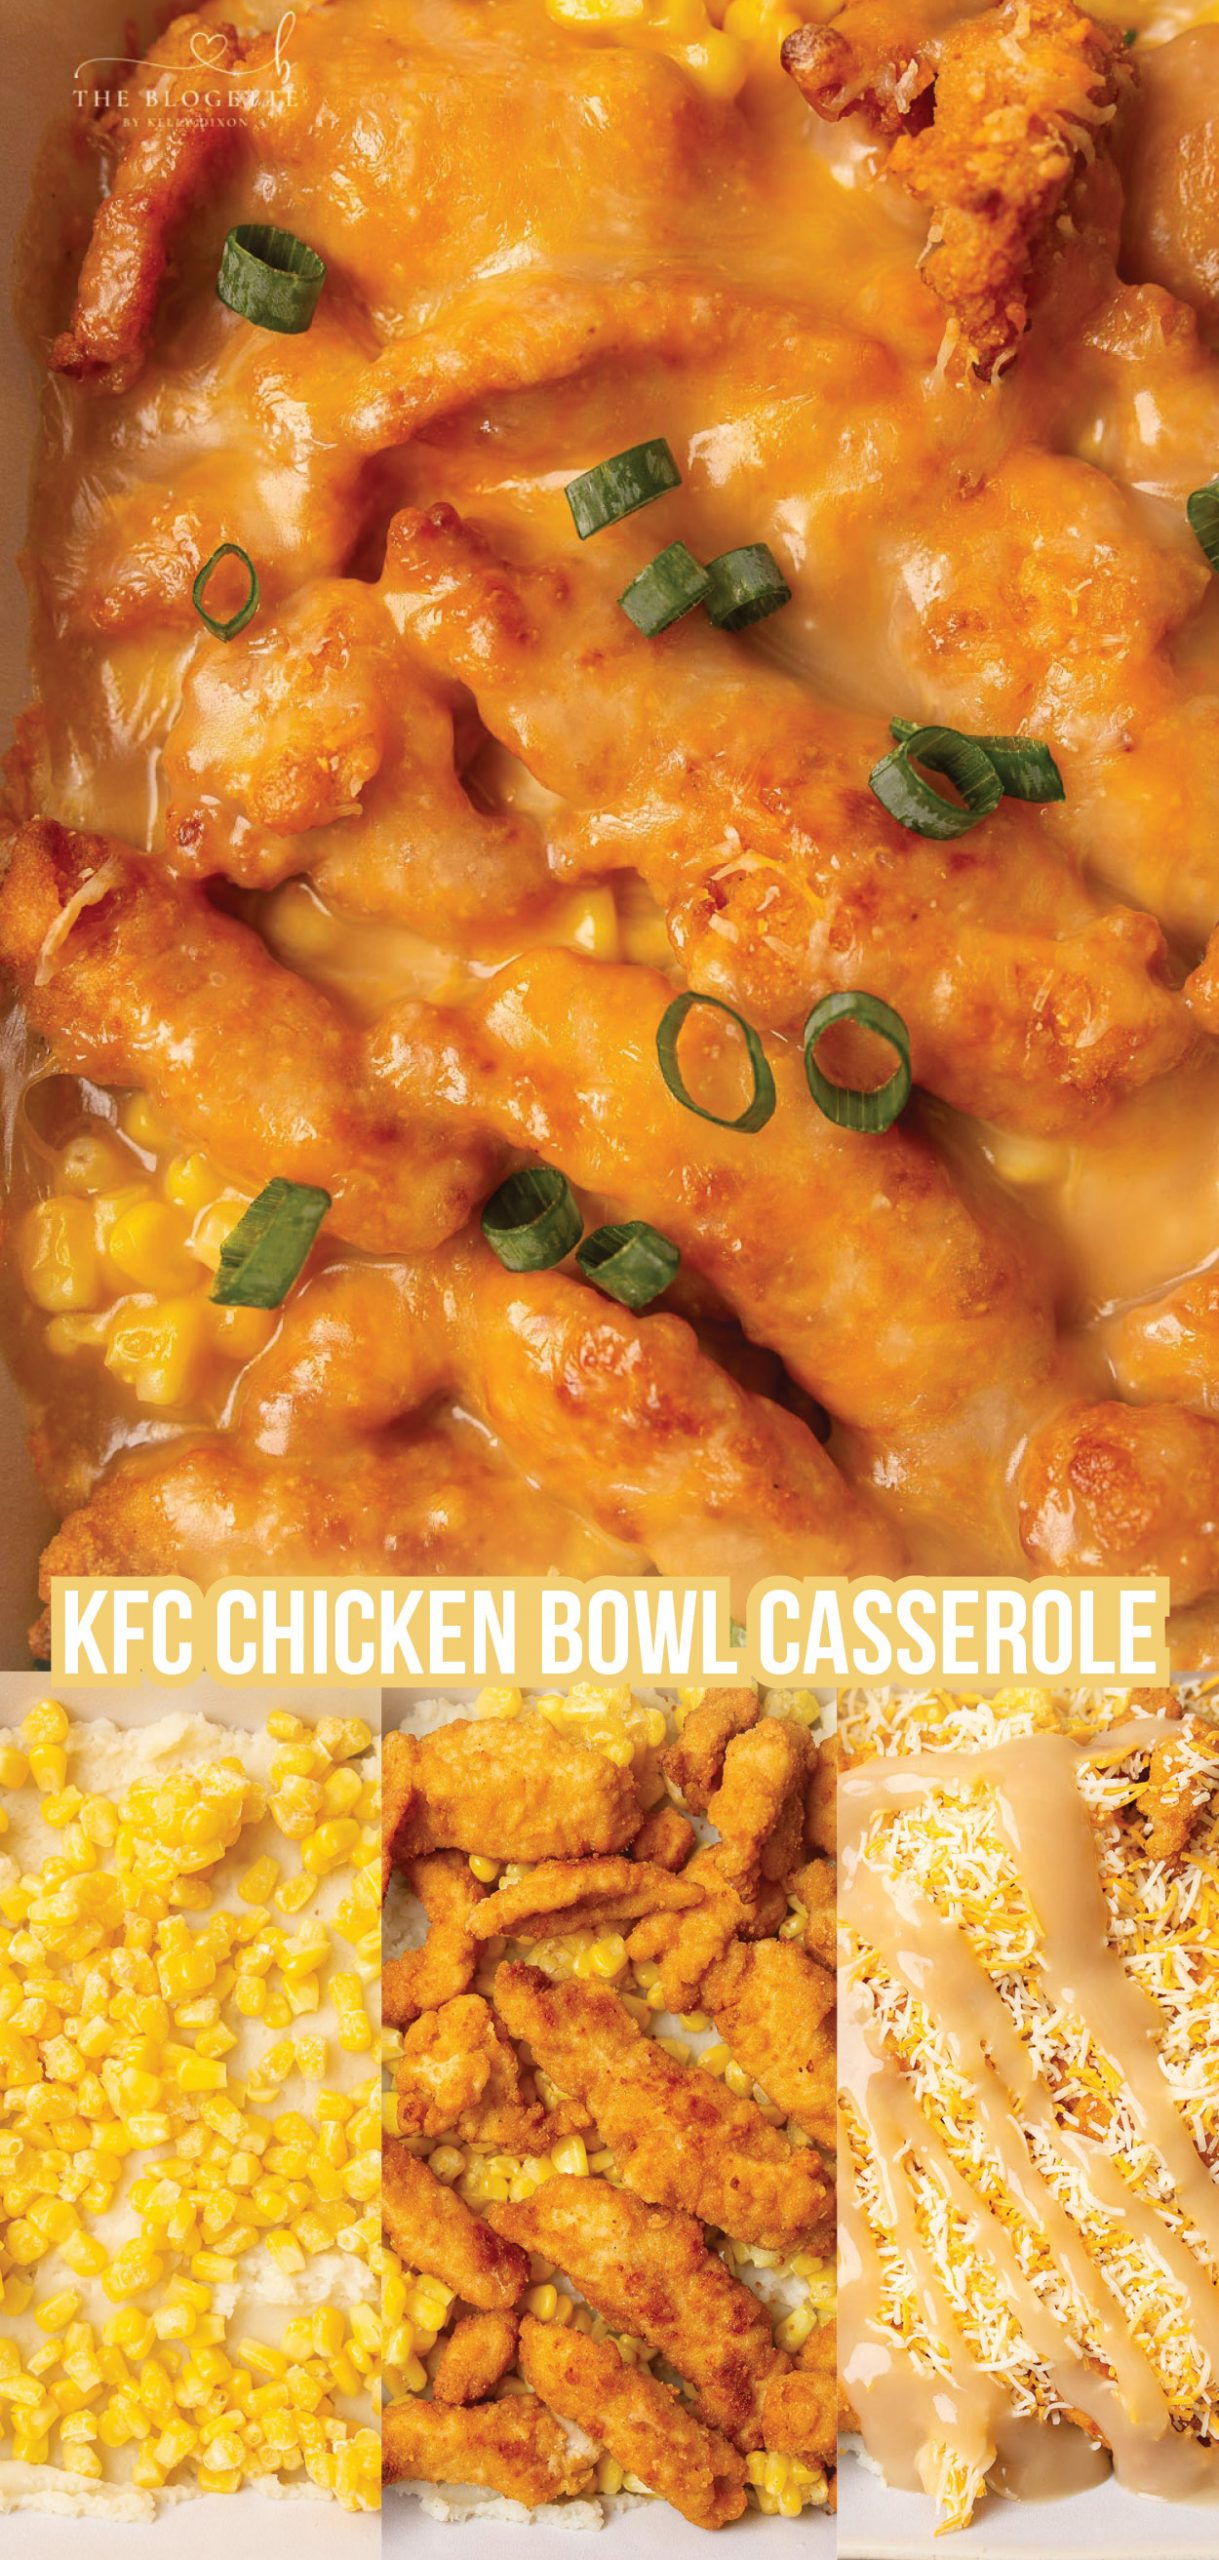 KFC Chicken Bowl Casserole This KFC Famous Bowl Casserole has become a huge hit in our house and is SUPER easy to make. It's a great recipe for kids to help with too! Tap the link above for the delicious recipe details:)